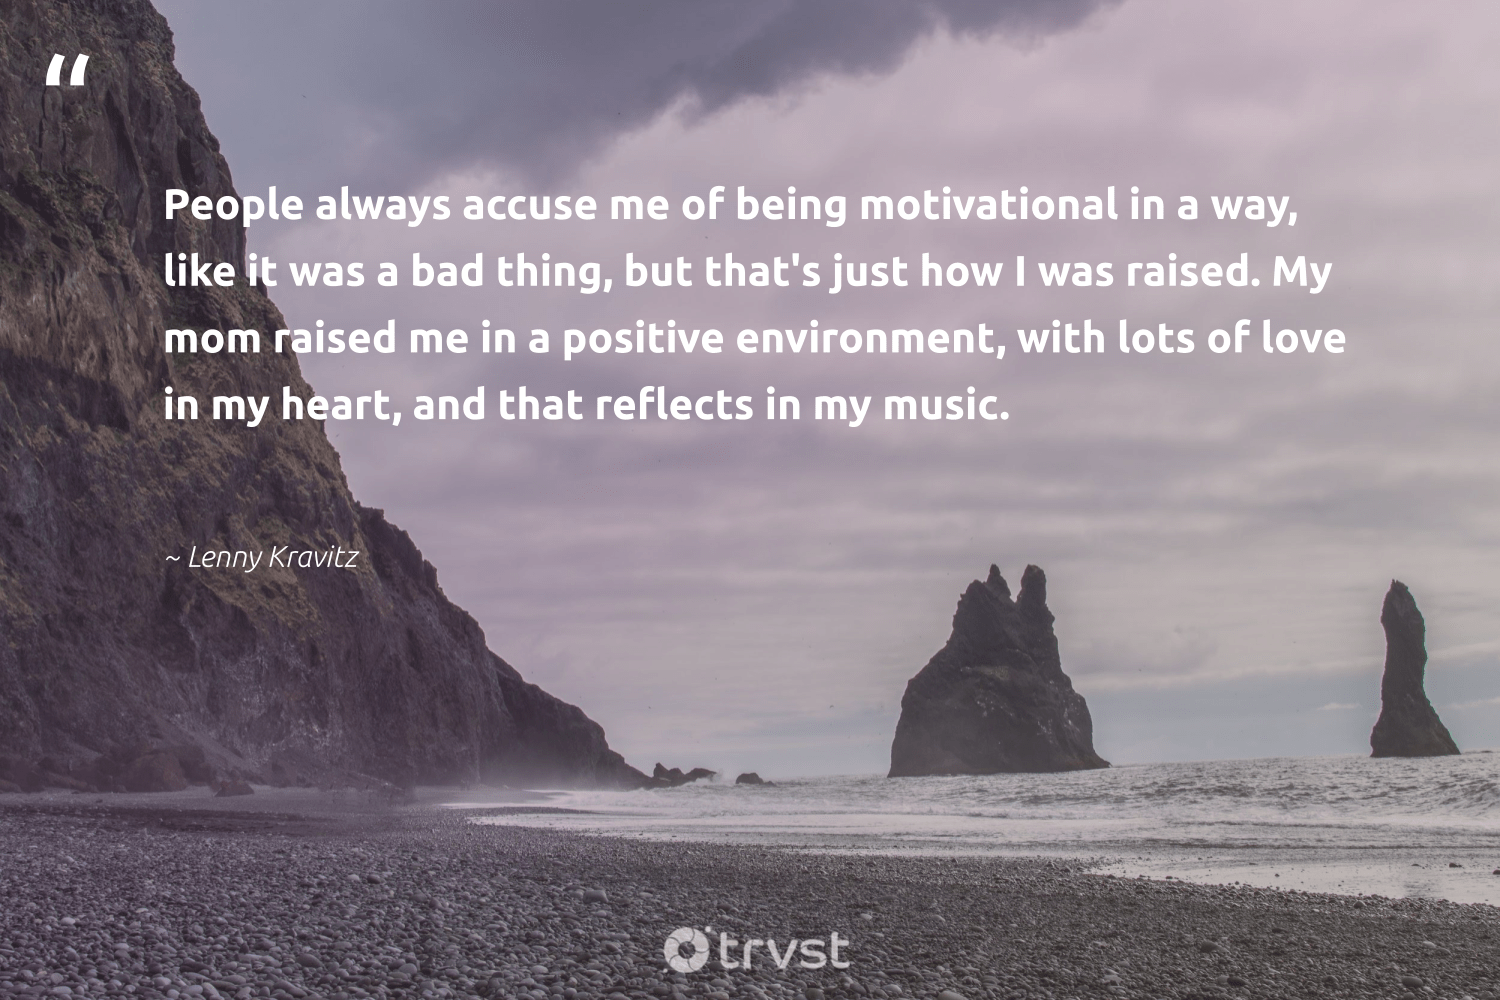 """People always accuse me of being motivational in a way, like it was a bad thing, but that's just how I was raised. My mom raised me in a positive environment, with lots of love in my heart, and that reflects in my music.""  - Lenny Kravitz #trvst #quotes #love #environment #motivational #conservation #futureofwork #sustainability #impact #earth #nevergiveup #ecofriendly"